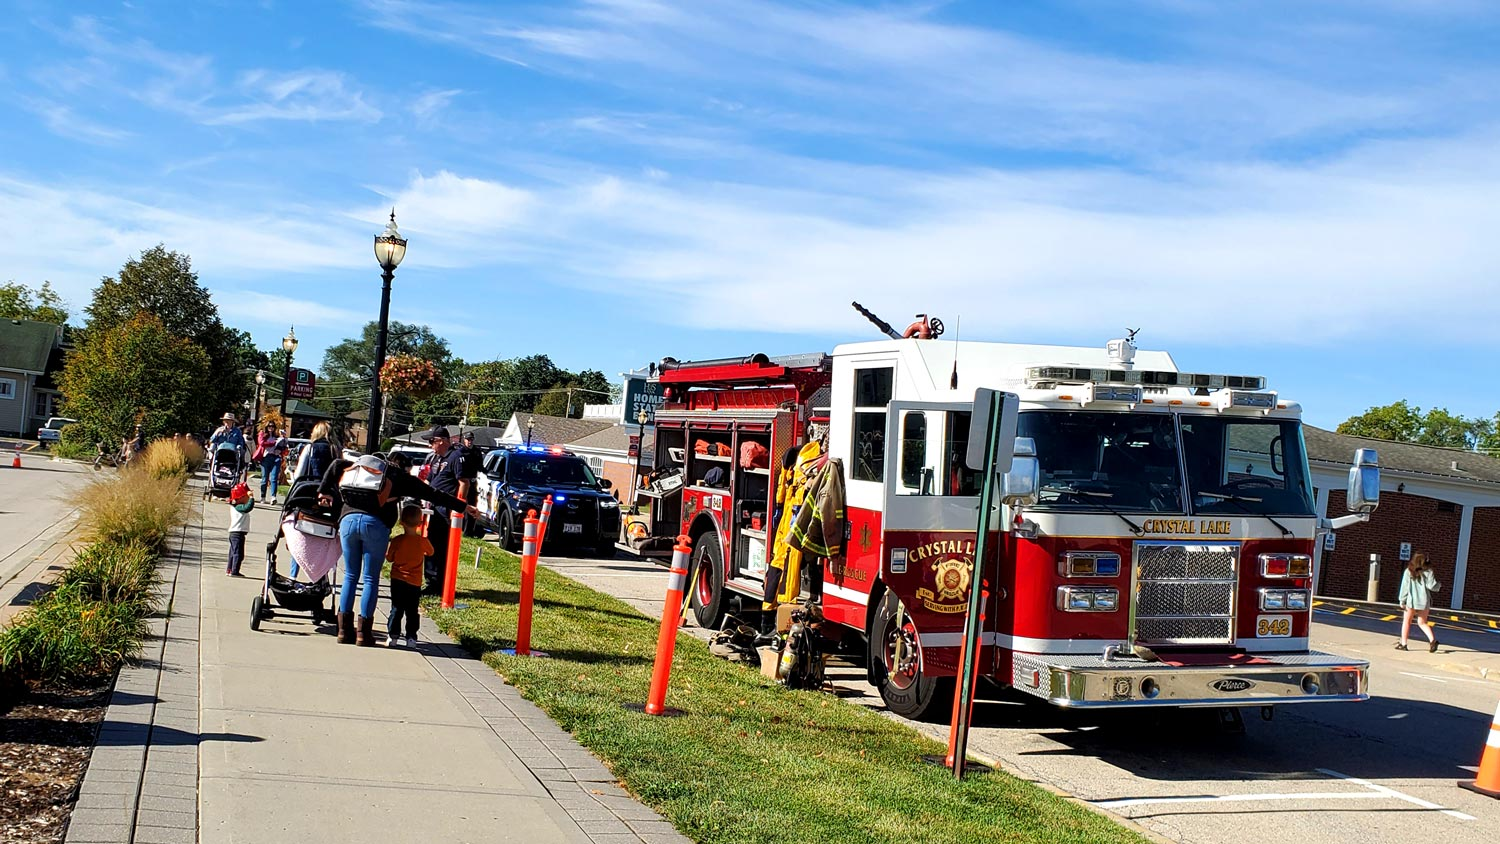 Crystal Lake fire and police departments on display.